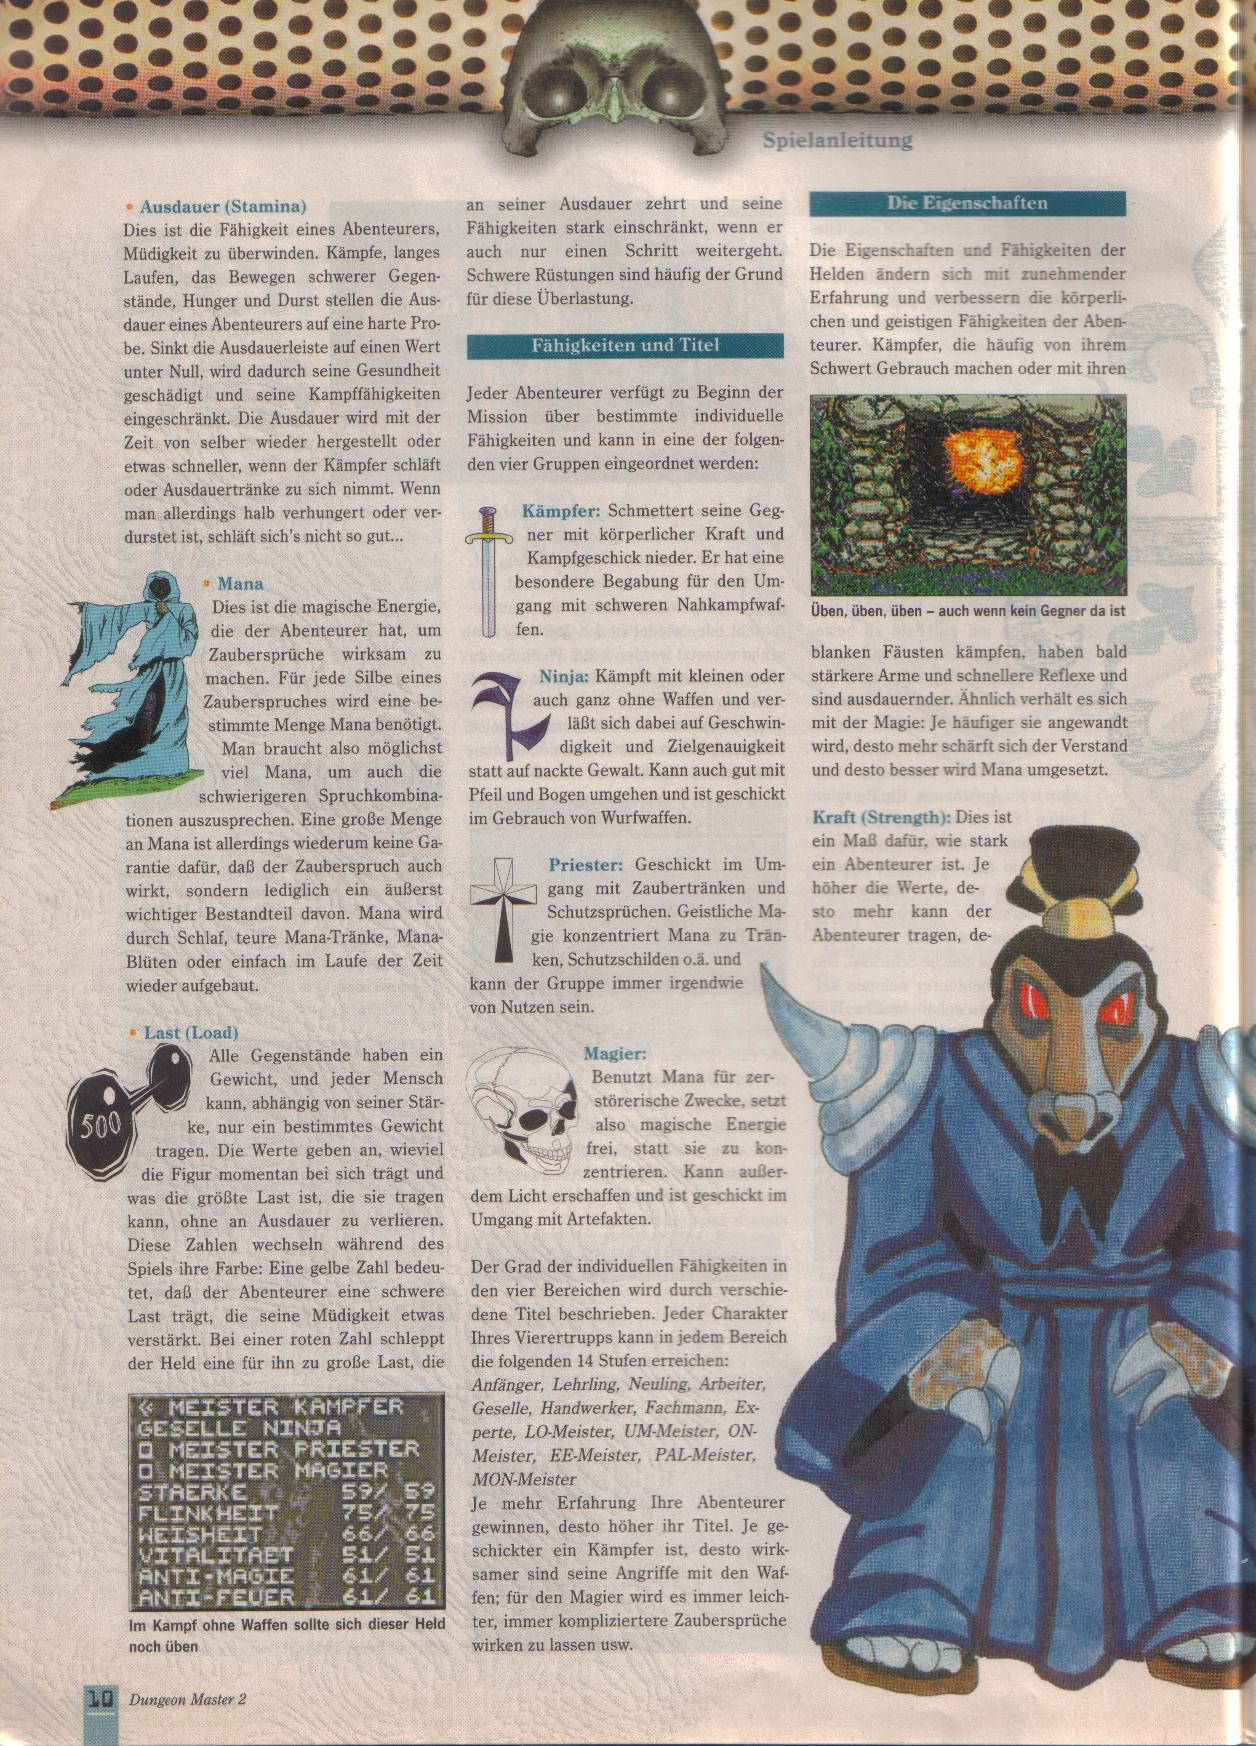 Dungeon Master II for PC (German, Best Seller Games) Page 10